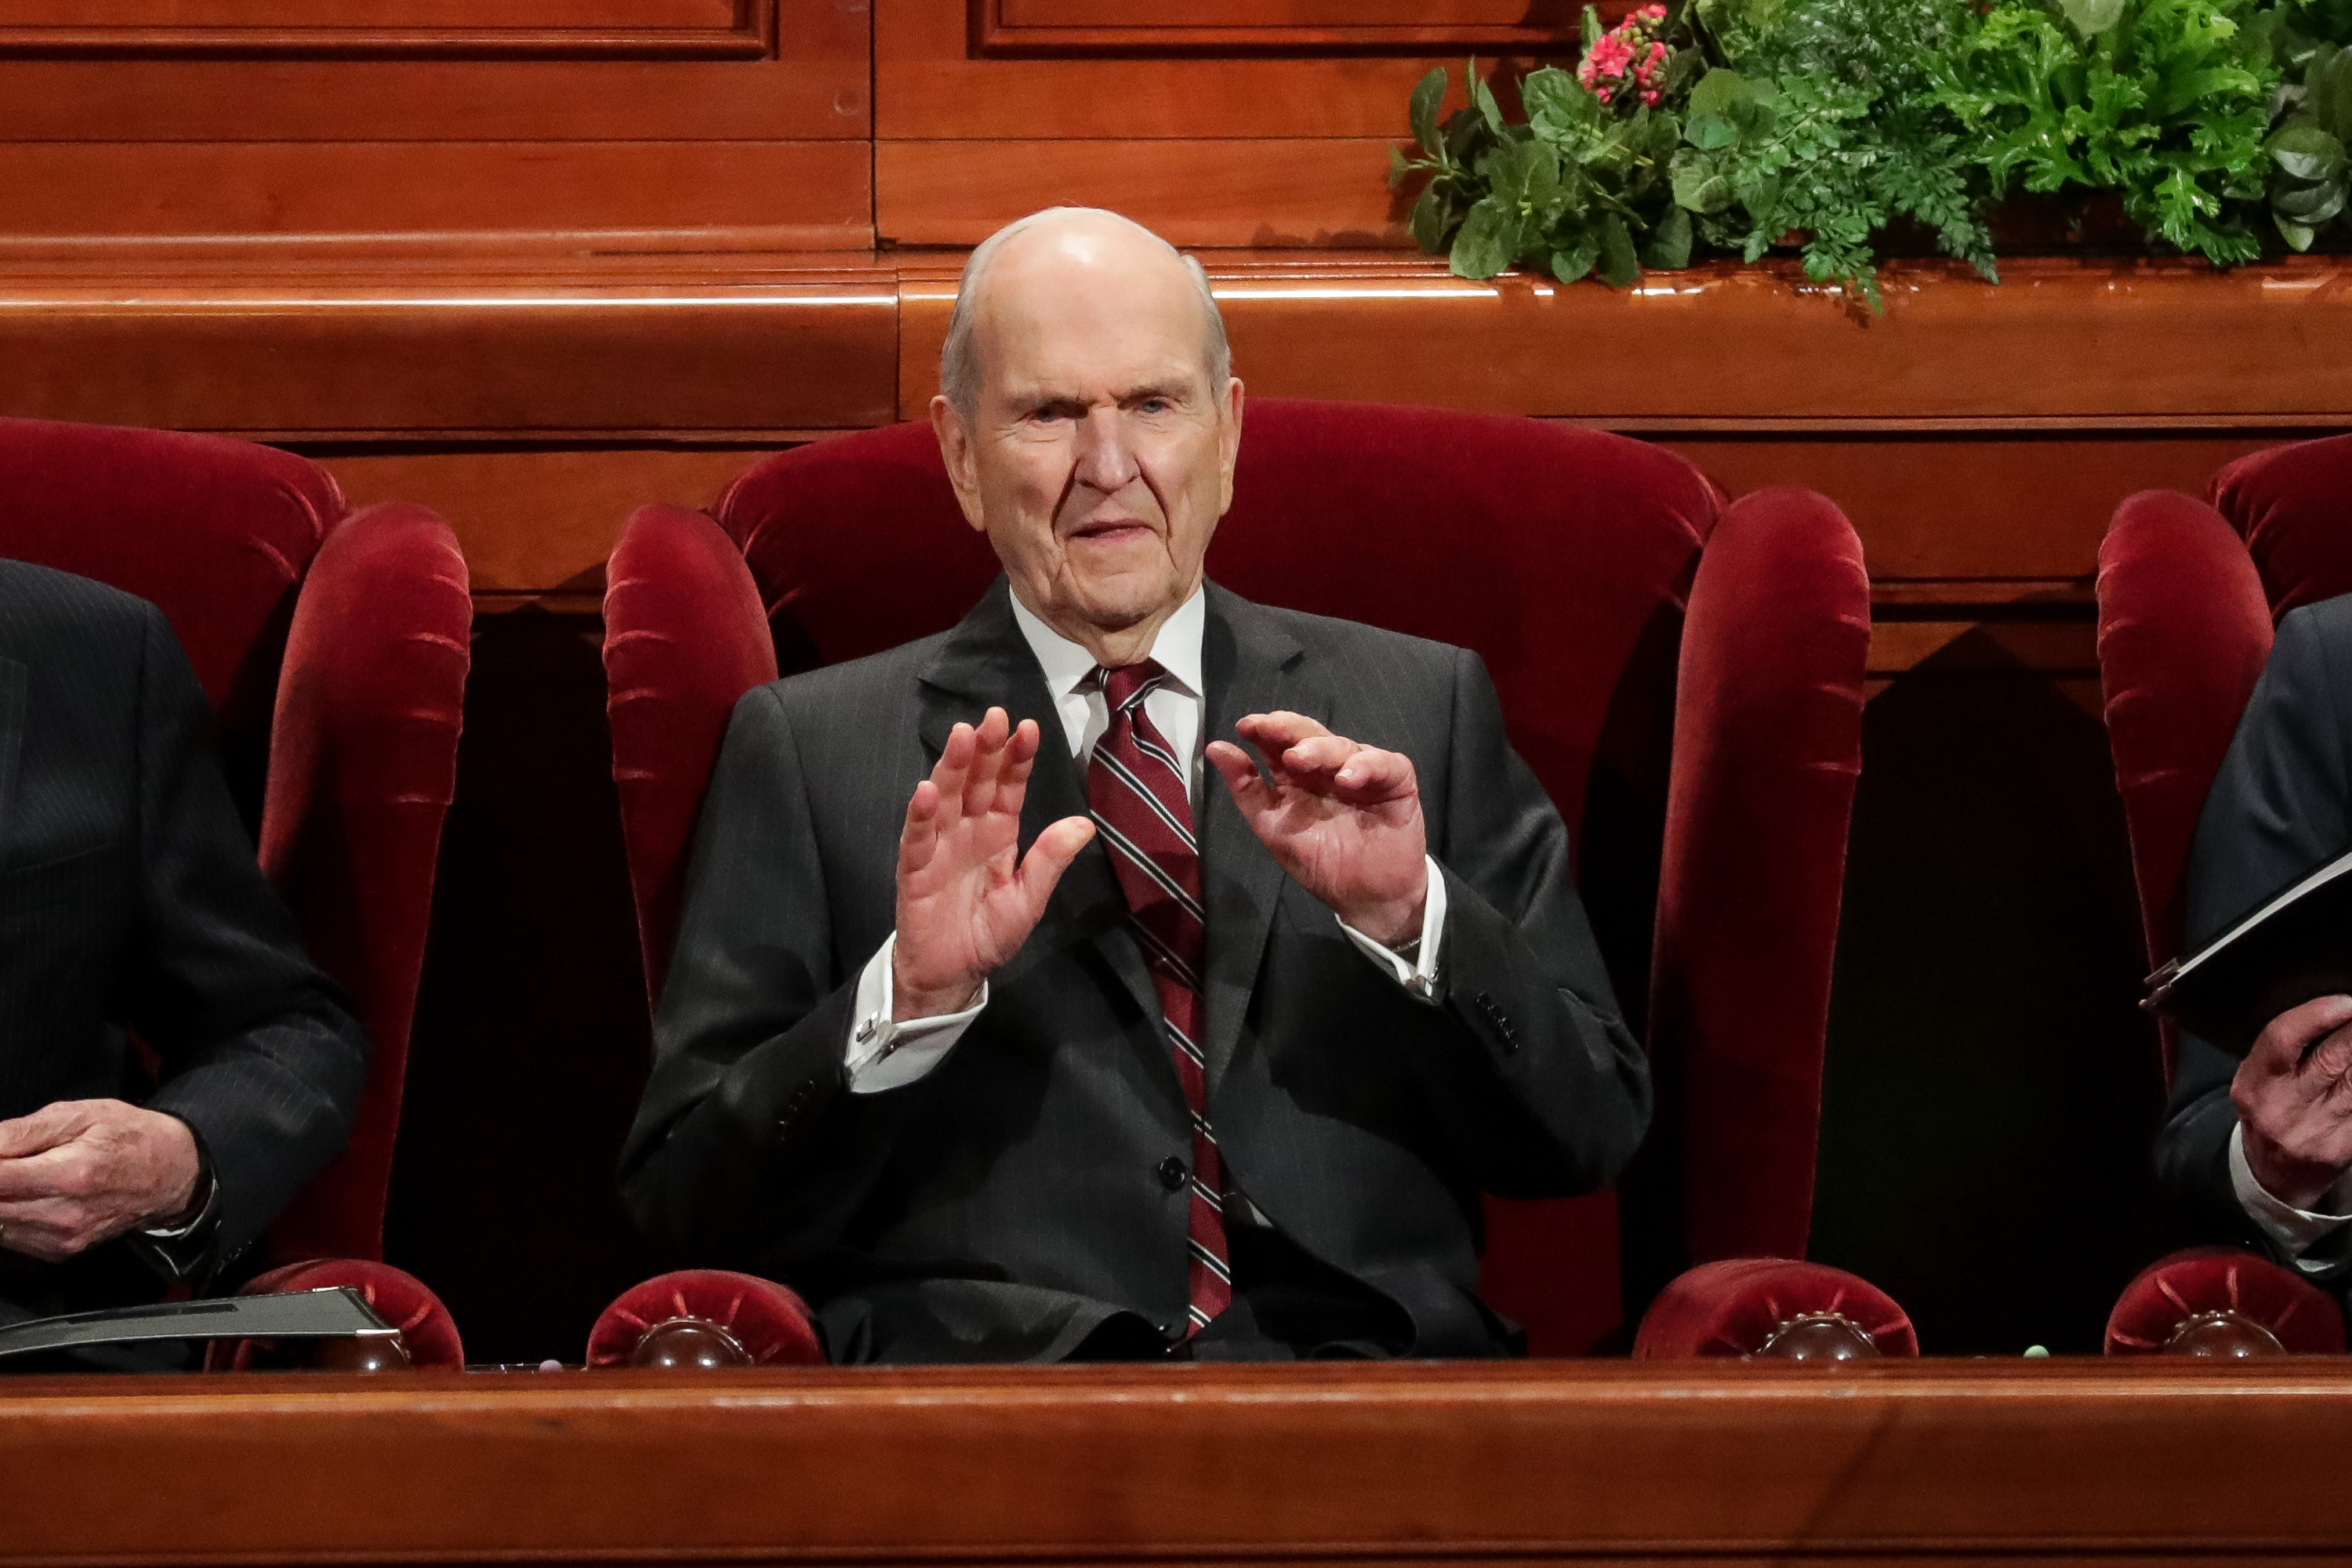 President Russell M. Nelson, center, waves as he and President Dallin H. Oaks, first counselor, left, and President Henry B. Eyring, second counselor, right, take their seats for the Saturday afternoon session of the 188th Semiannual General Conference of The Church of Jesus Christ of Latter-day Saints in the Conference Center in Salt Lake City on Saturday, Oct. 6, 2018.